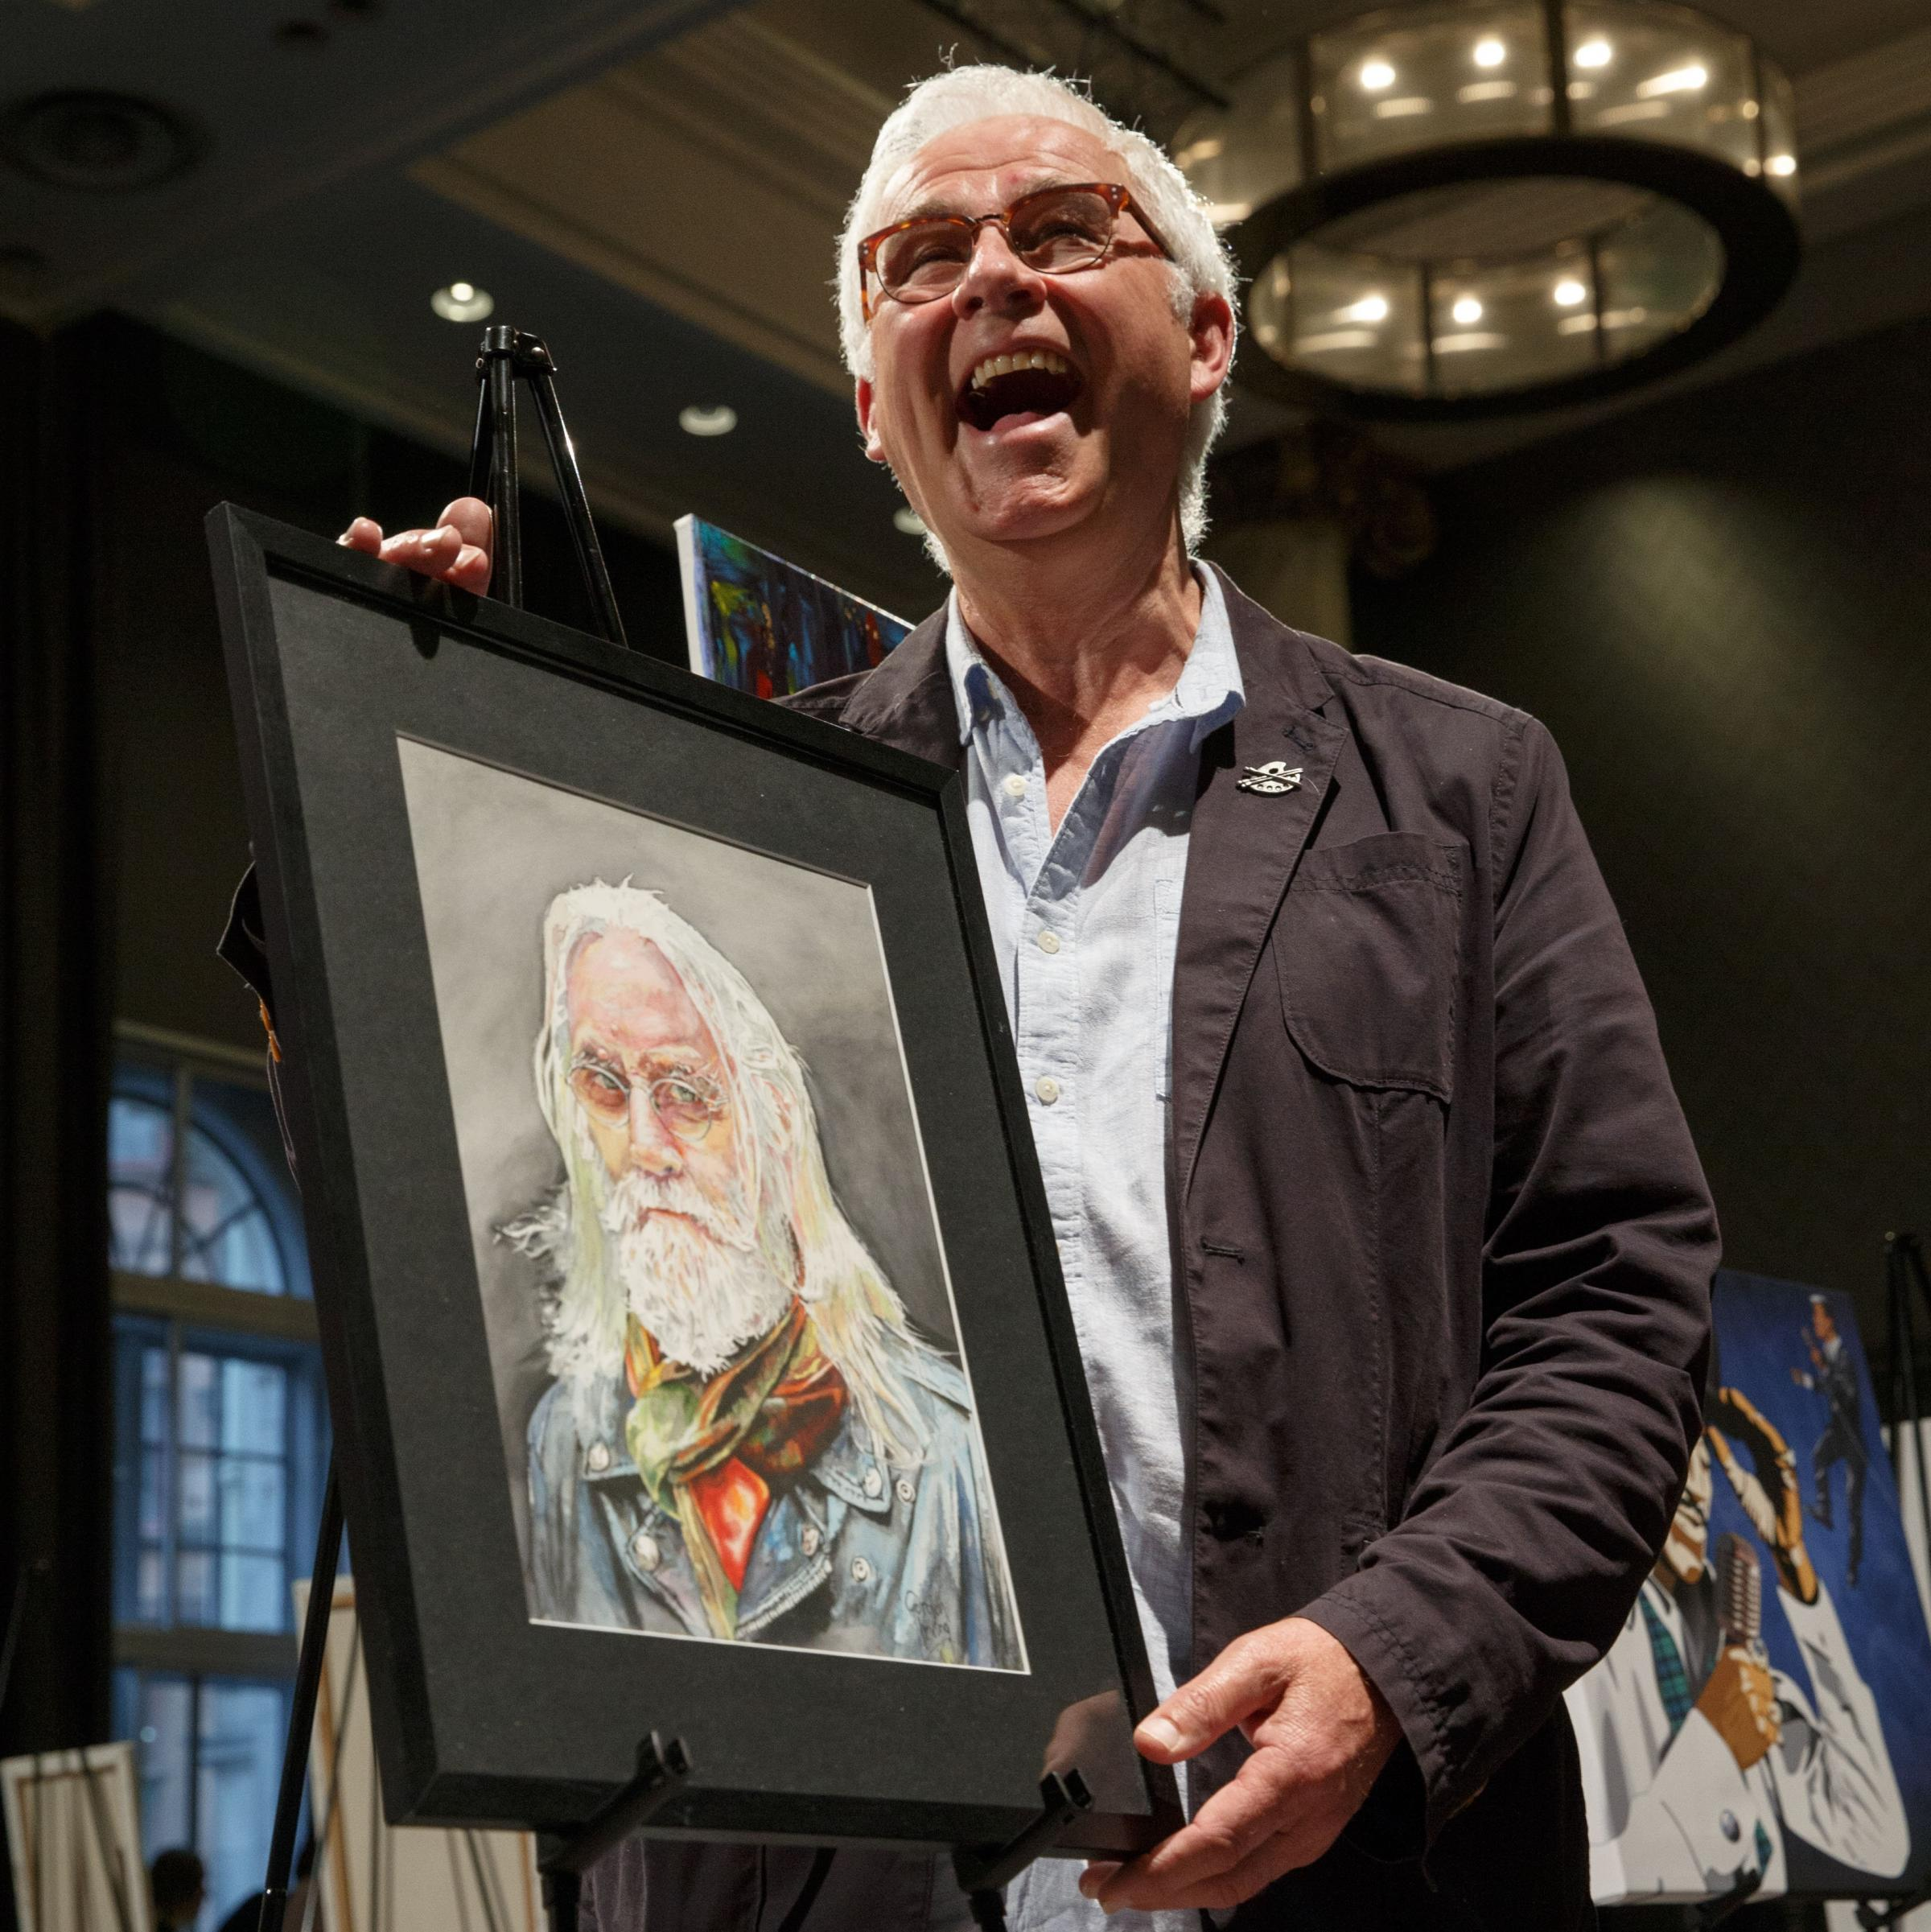 Billy Connolly portrait take honours in the Grand Central Portrait Competition